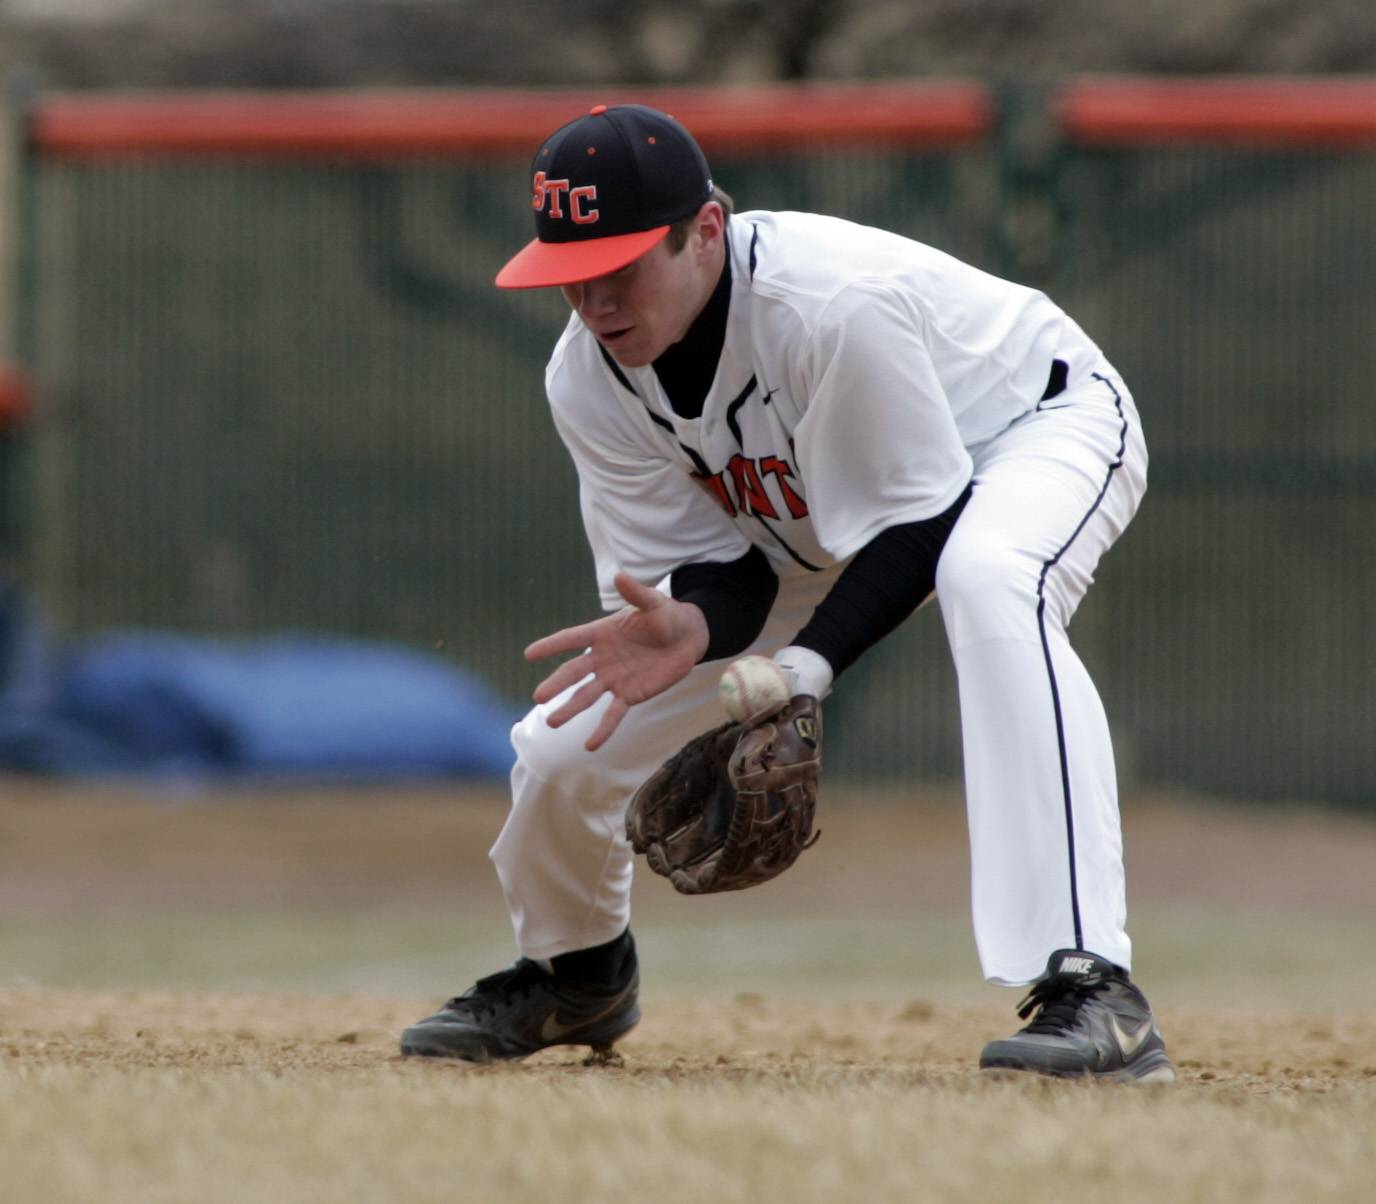 Saints' Jake Milosch, 18, reaches for a ground ball during West Aurora at St. Charles East baseball Tuesday.